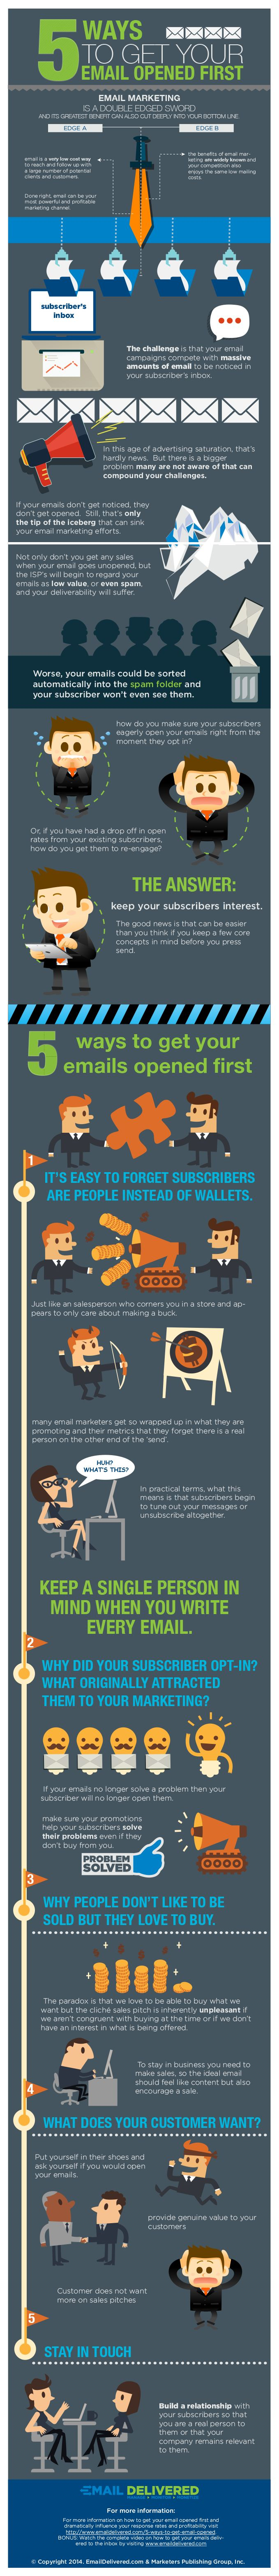 5 Ways To Get Your Email Opened First #infographic #EmailMarketing #Marketing